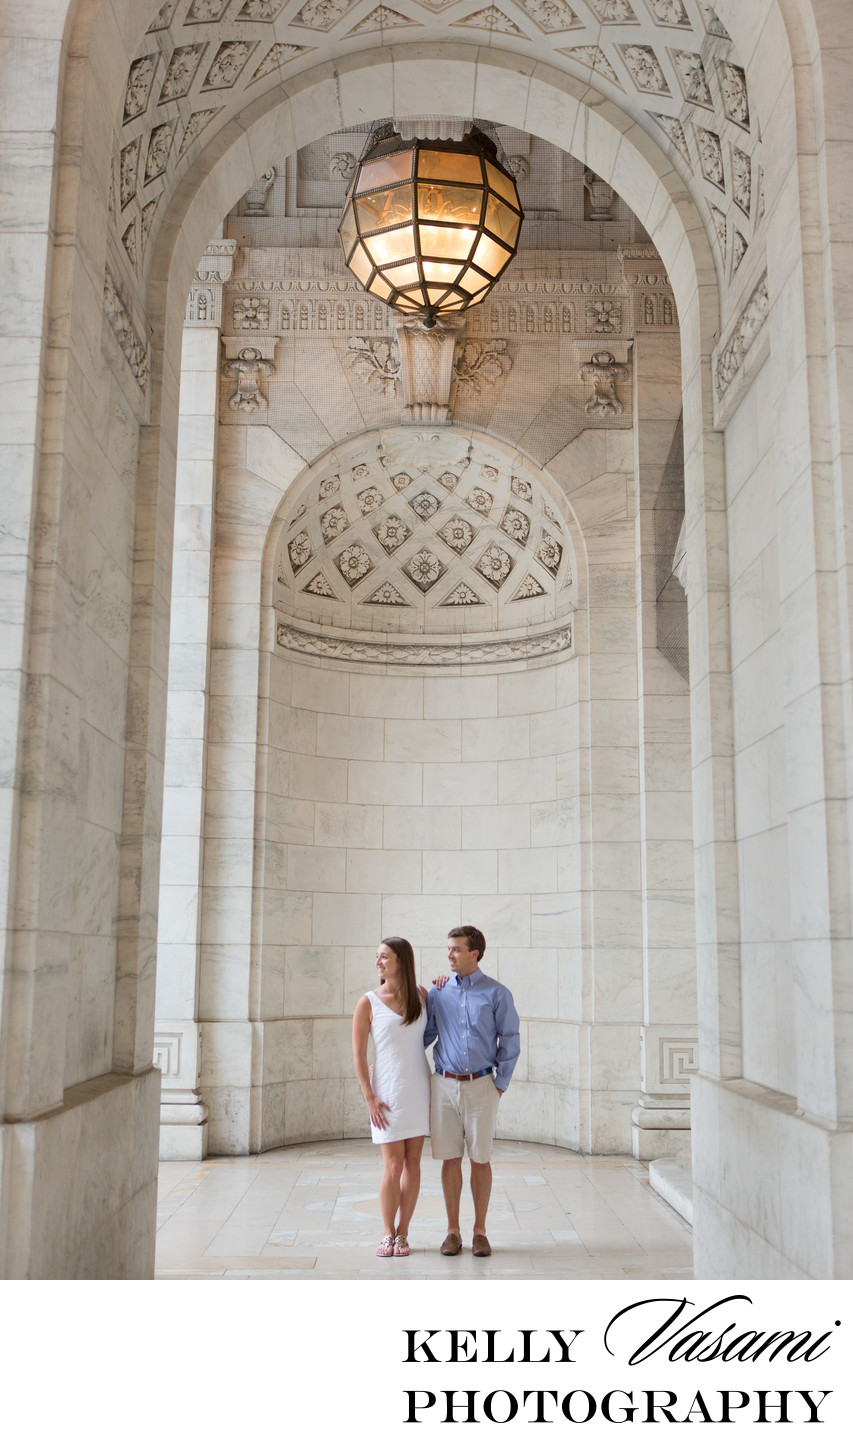 NY Public Library is this couple's dramatic backdrop